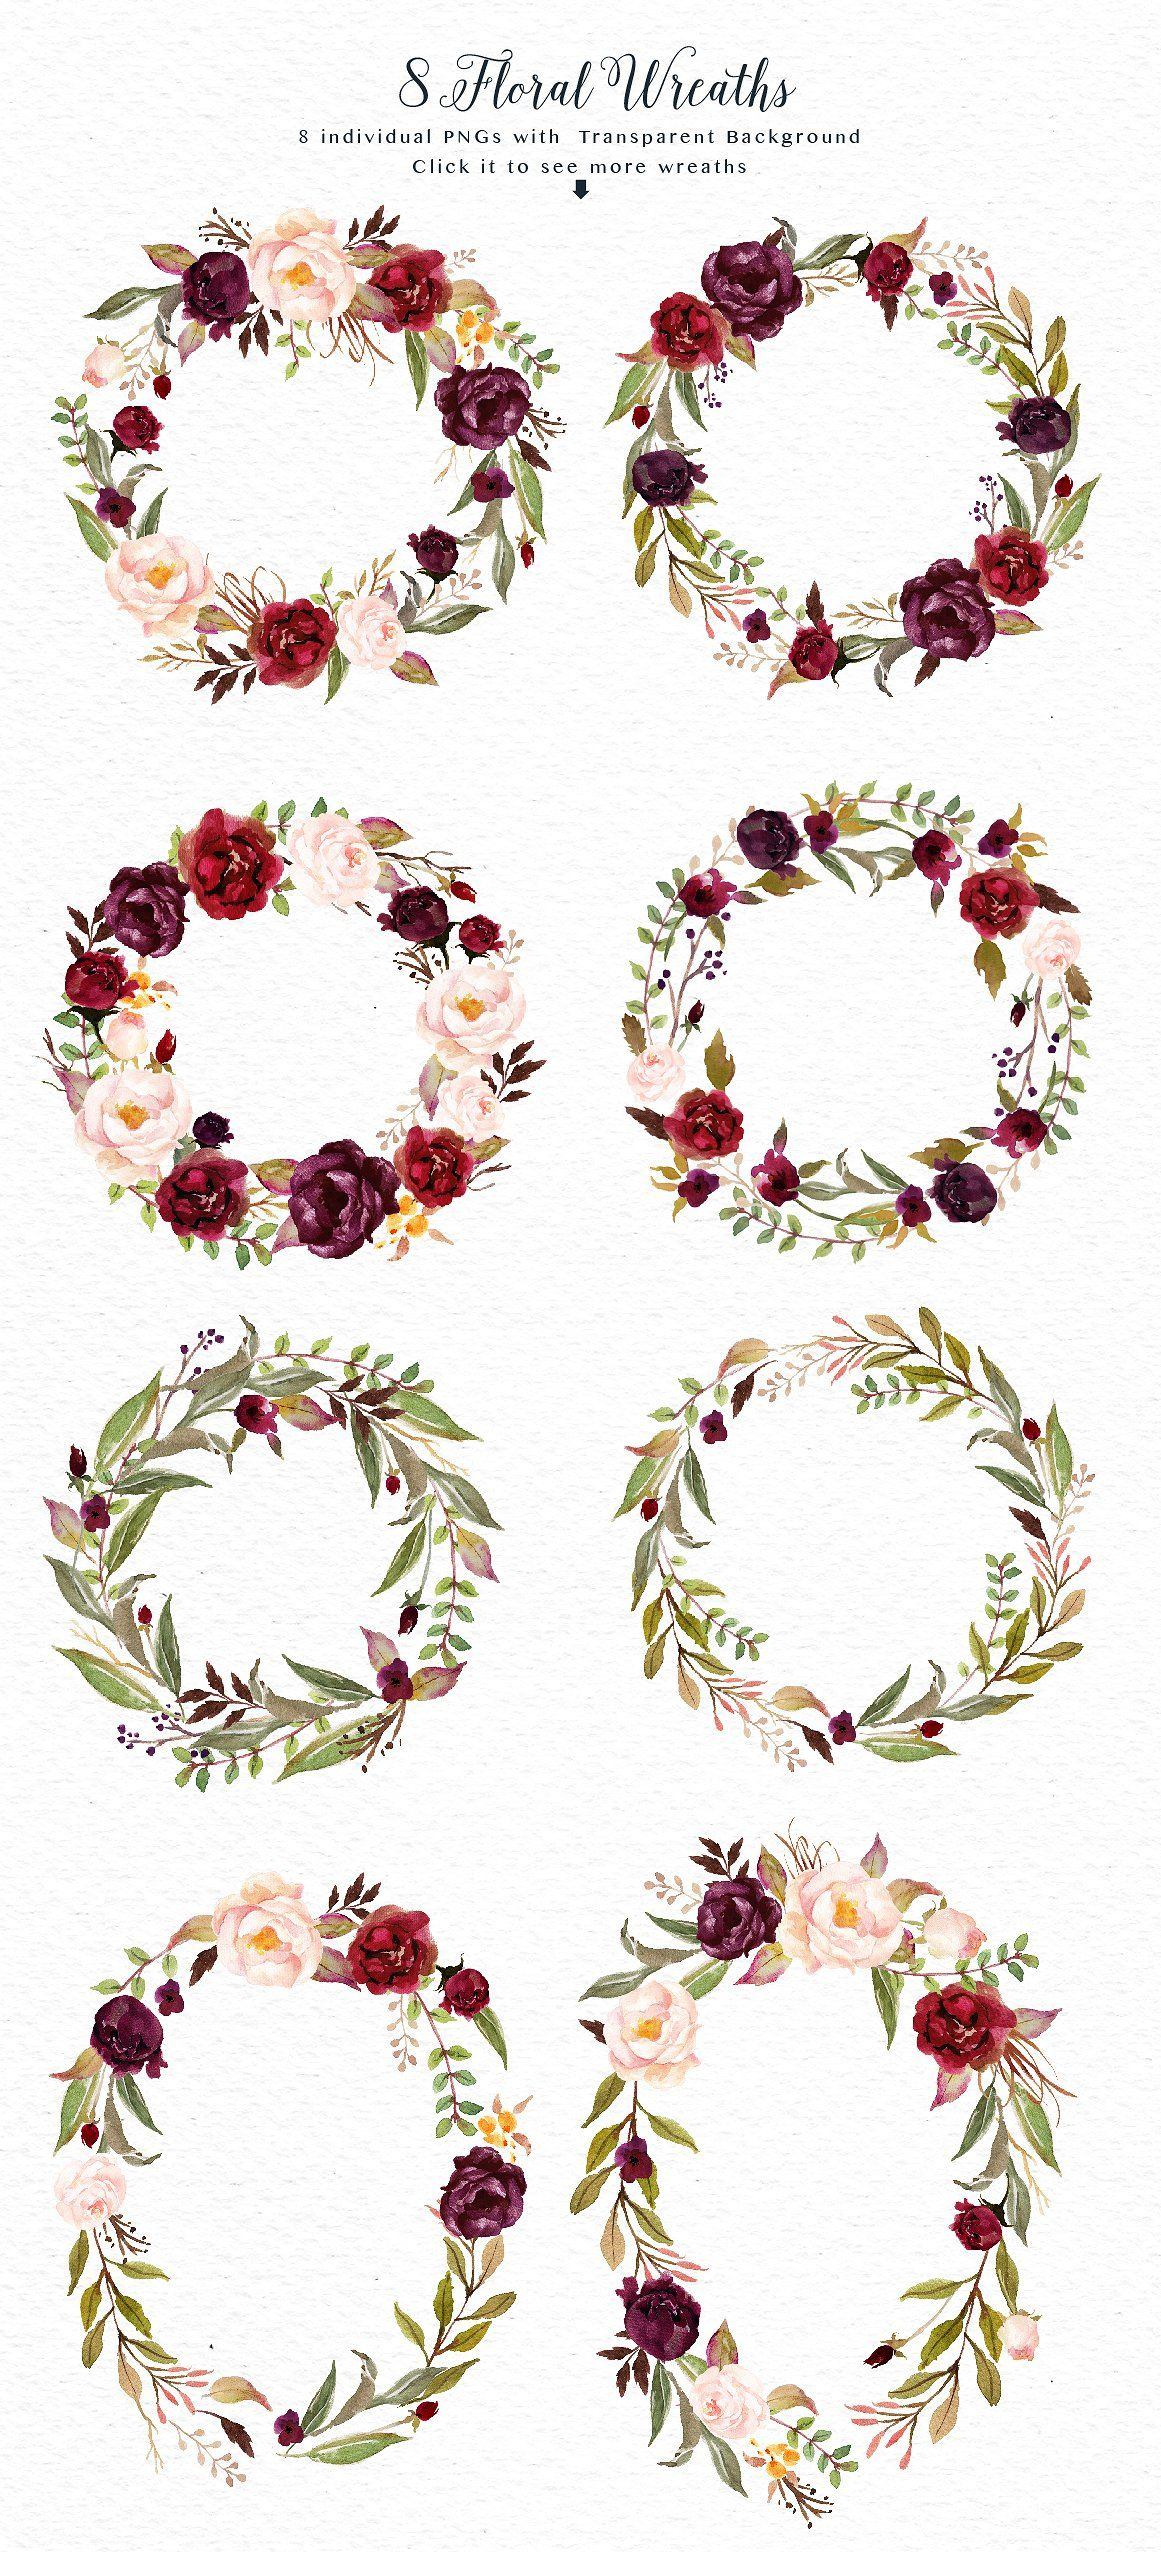 Watercolor flowers png clipart illustrations on creative market - Watercolor Flower Clip Art Marsala By Graphic Box On Creativemarket